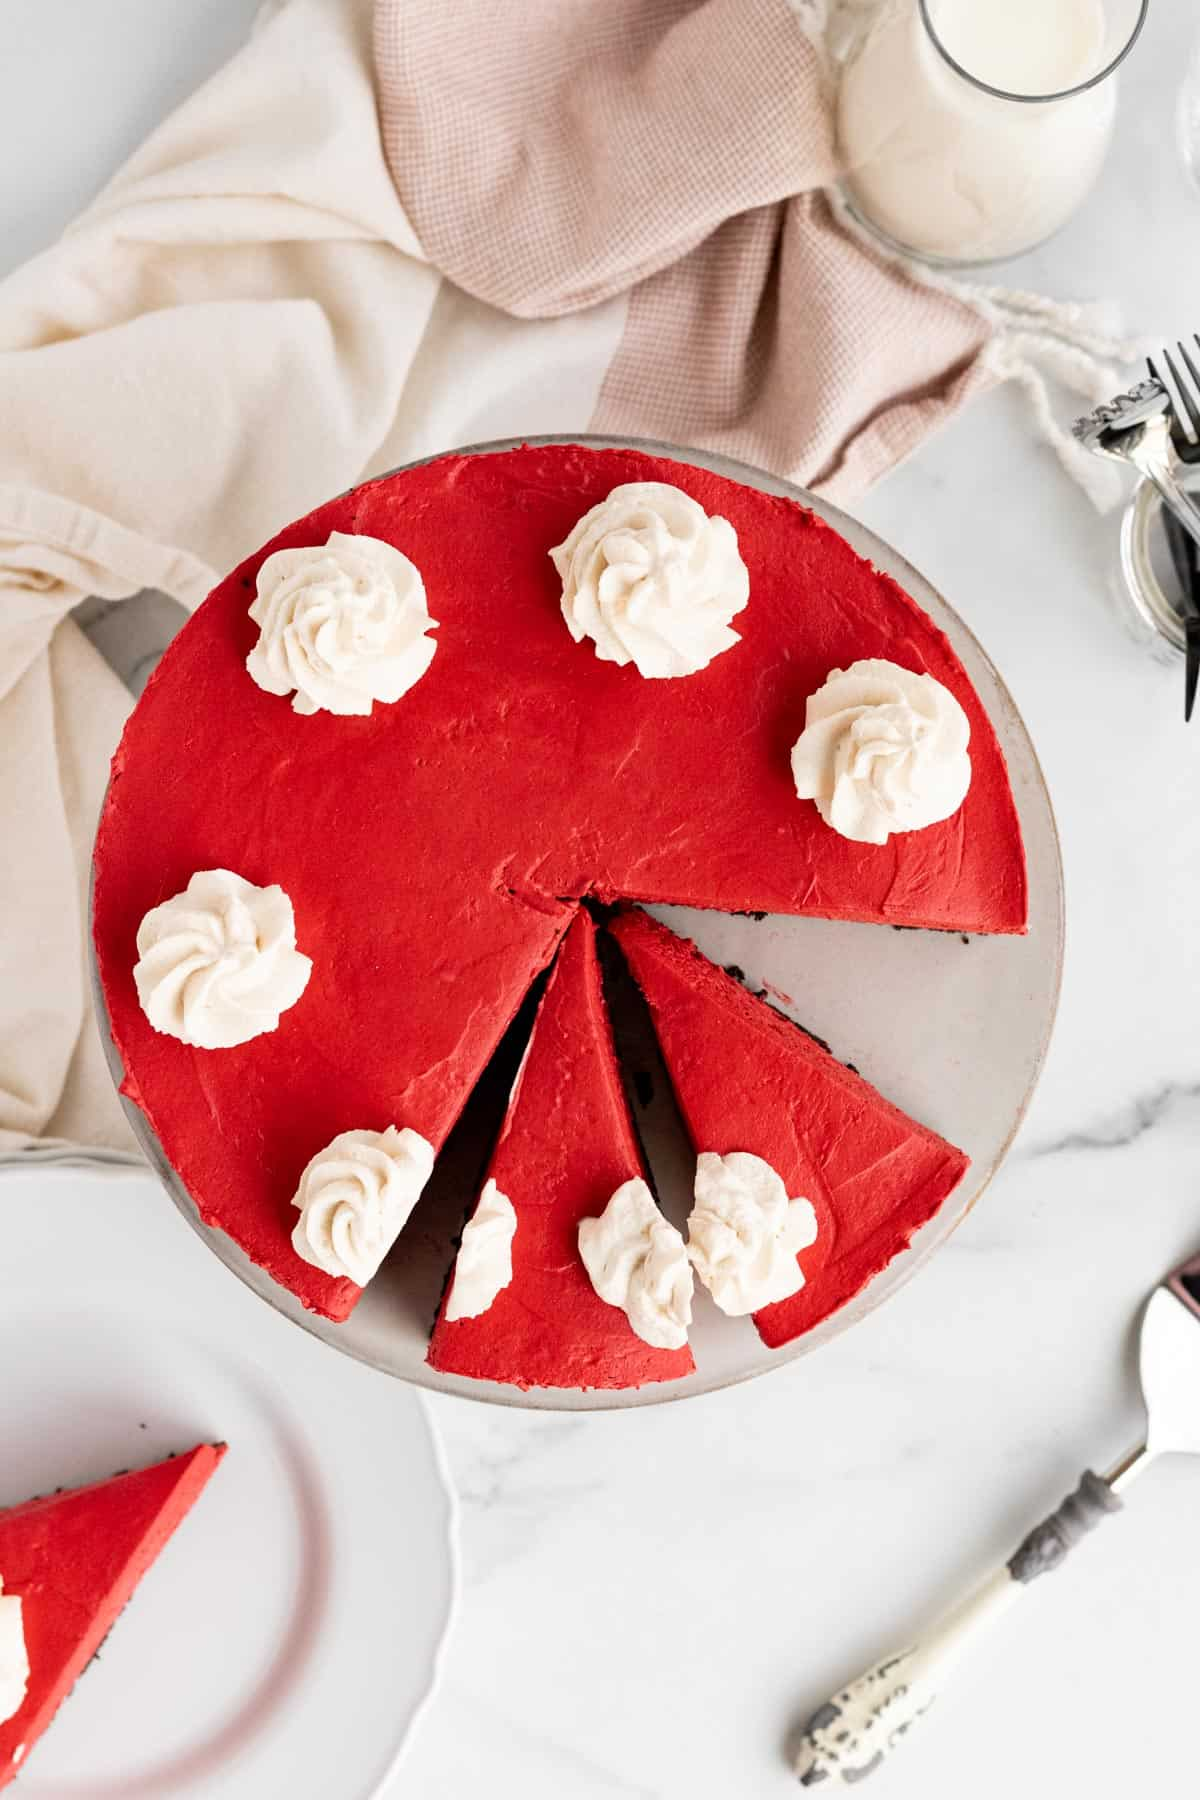 red velvet no-bake cheesecake with 2 slices cut and another slice on a white plate